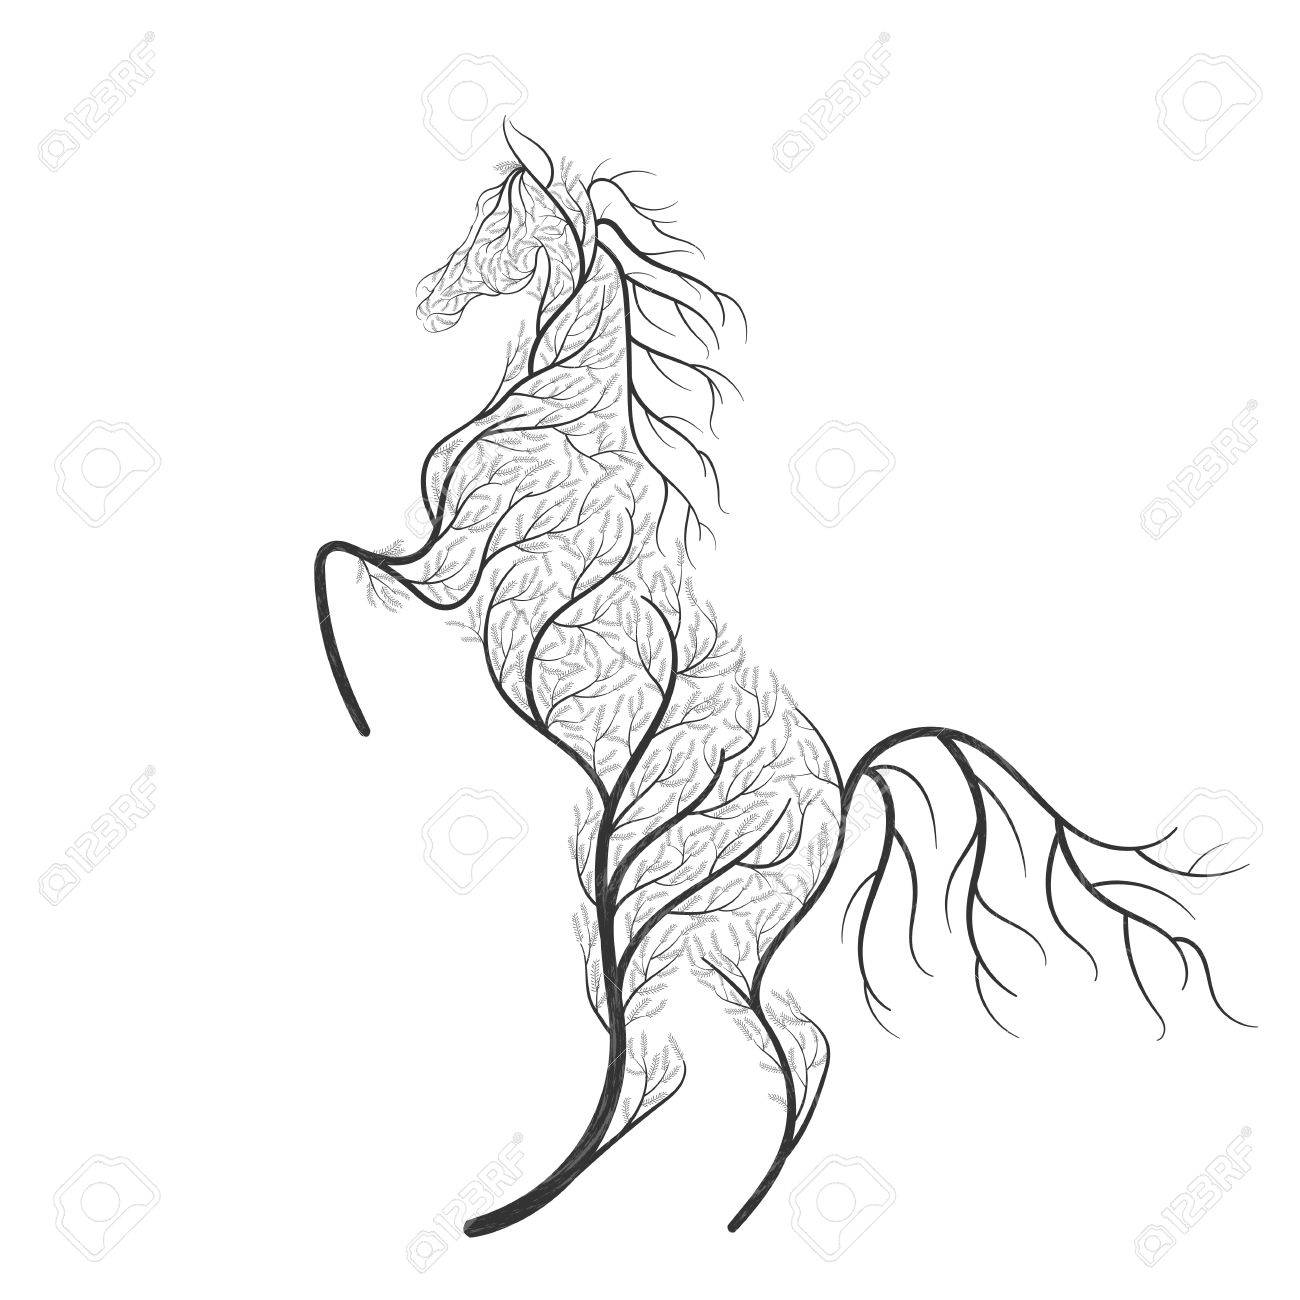 Concept Horse Jumping Stylized Bush Royalty Free Cliparts Vectors And Stock Illustration Image 77768771